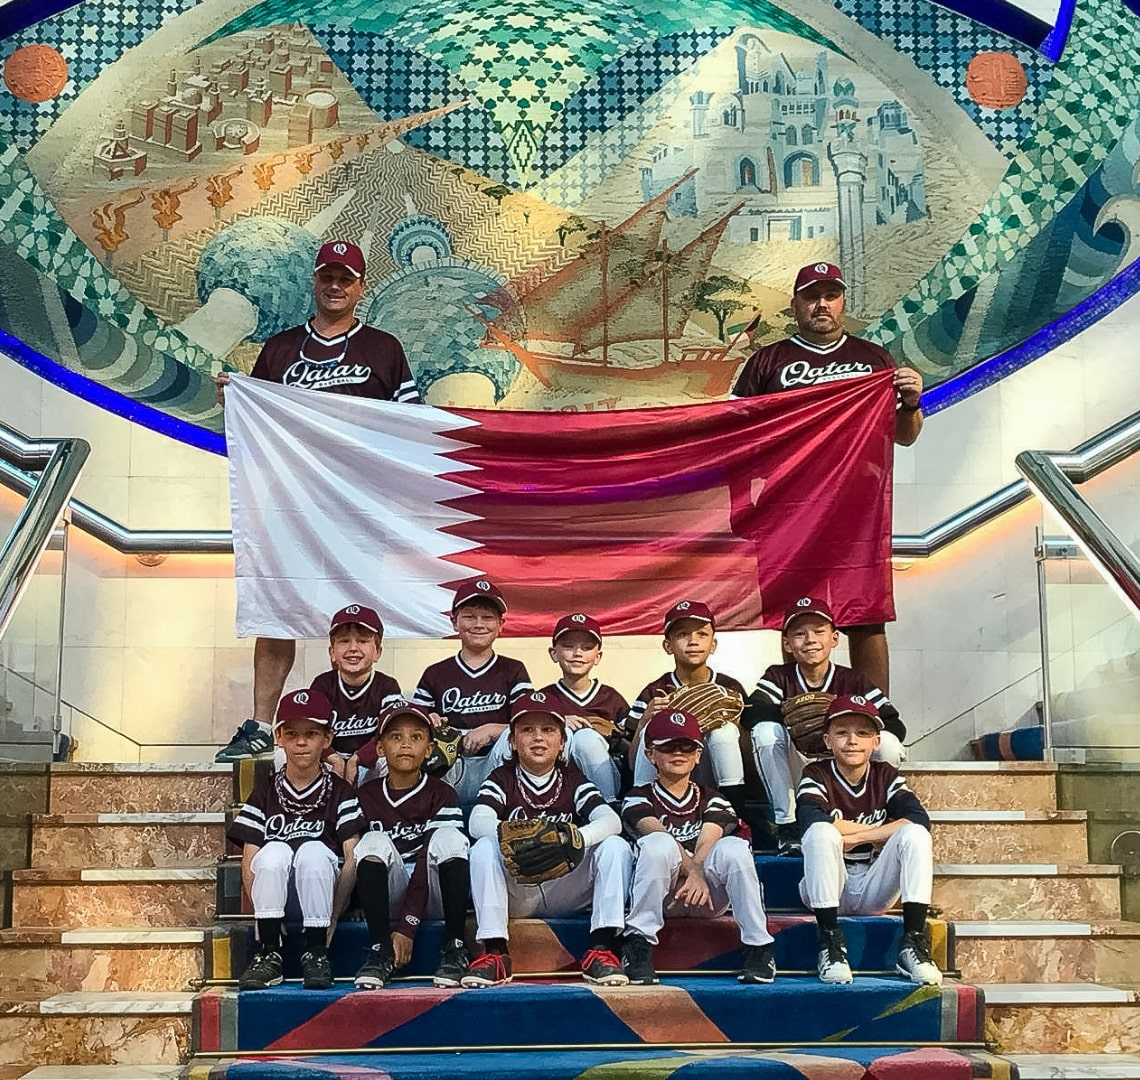 Baseball Mom - Thing 2 with 2 of his coaches and his 9 teammates sitting on the stairs in the hotel. The coaches are standing behind them holding the Qatari flag.